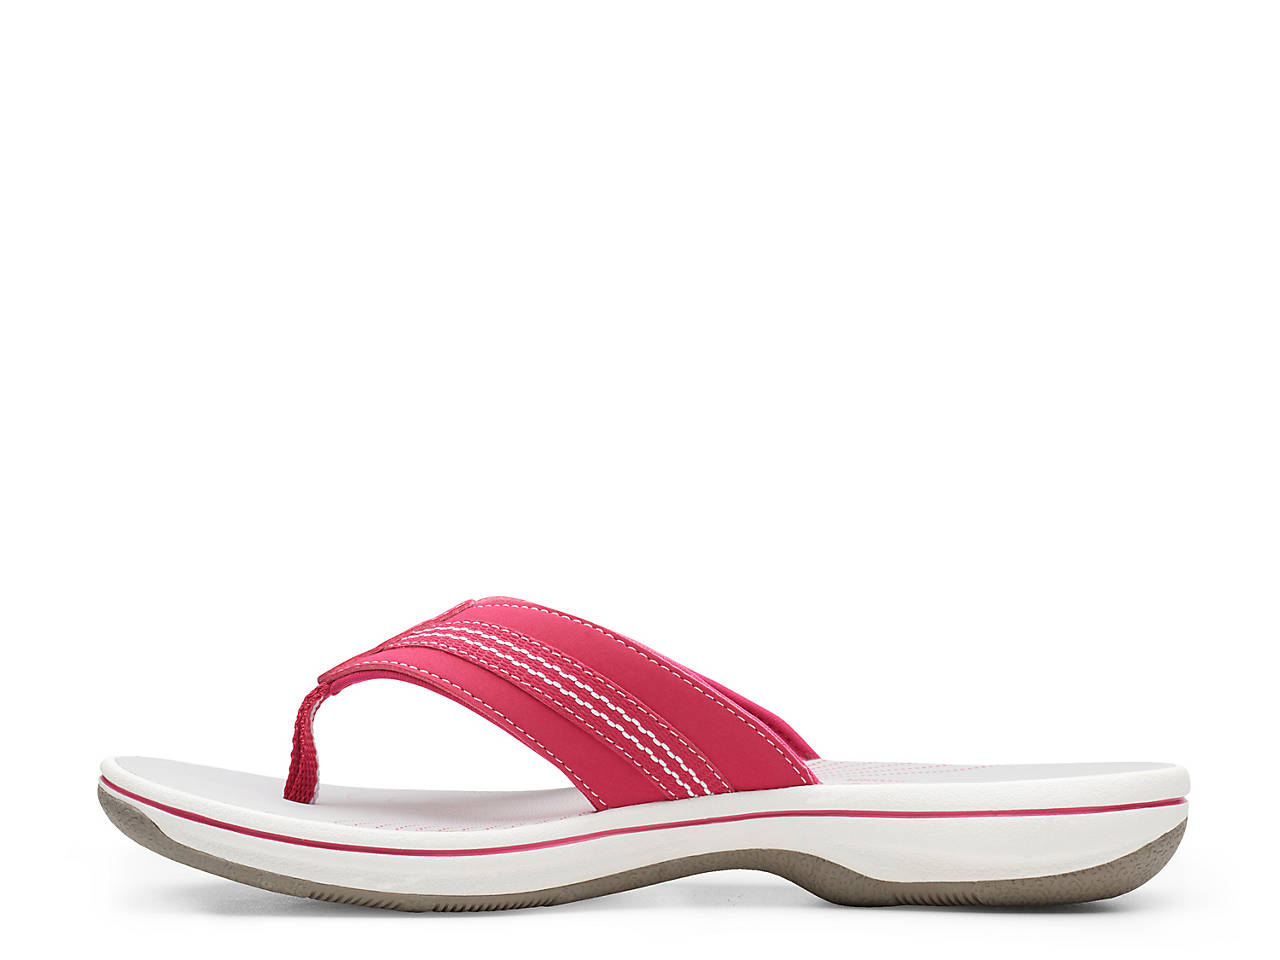 Cloudsteppers By Clarks Brinkley Sun Flip Flop Womens -7317